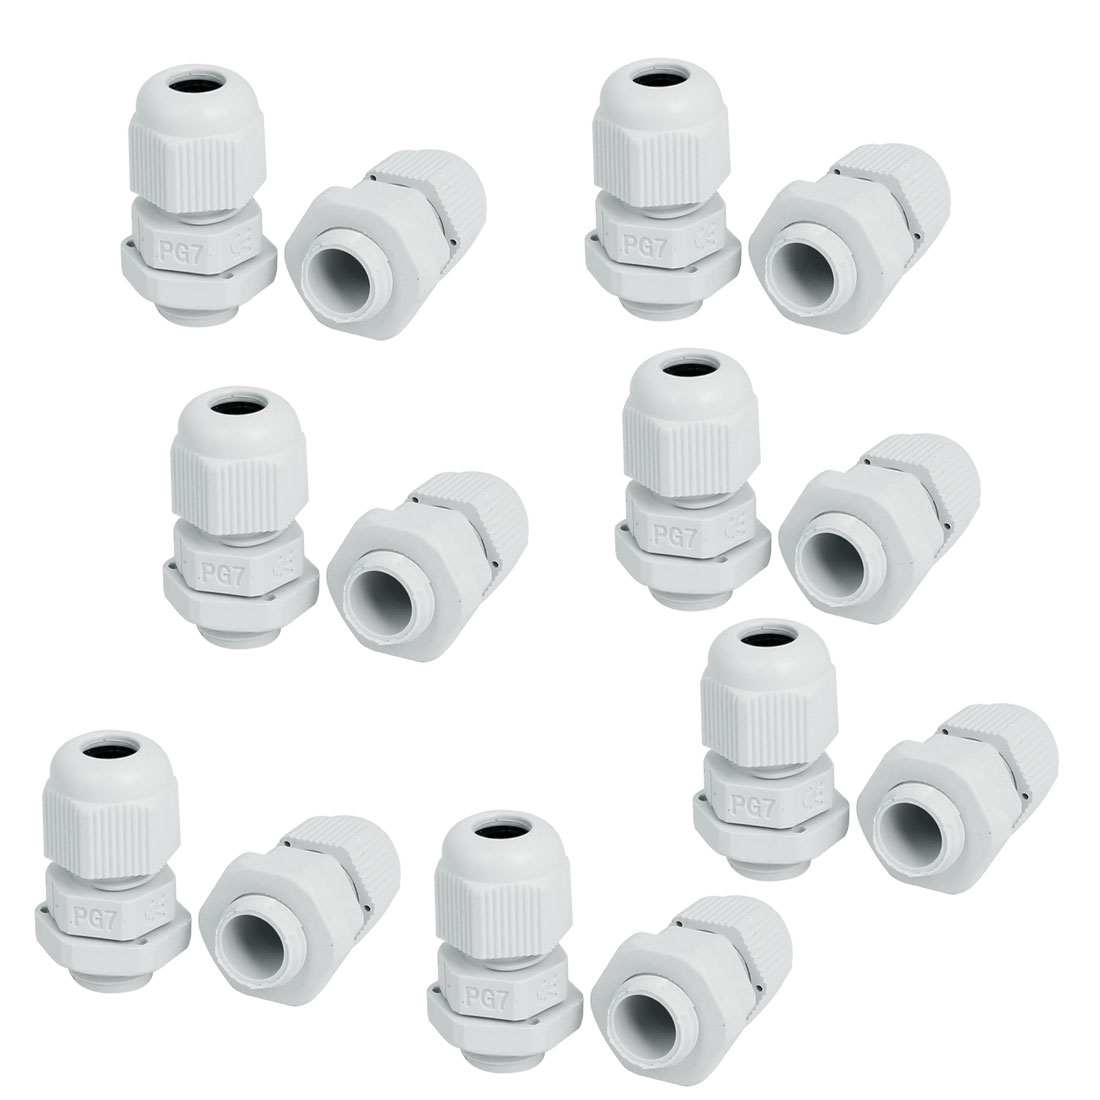 PG7 Waterproof Wire Cable Glands Clamp White Plastic Connector 14pcs